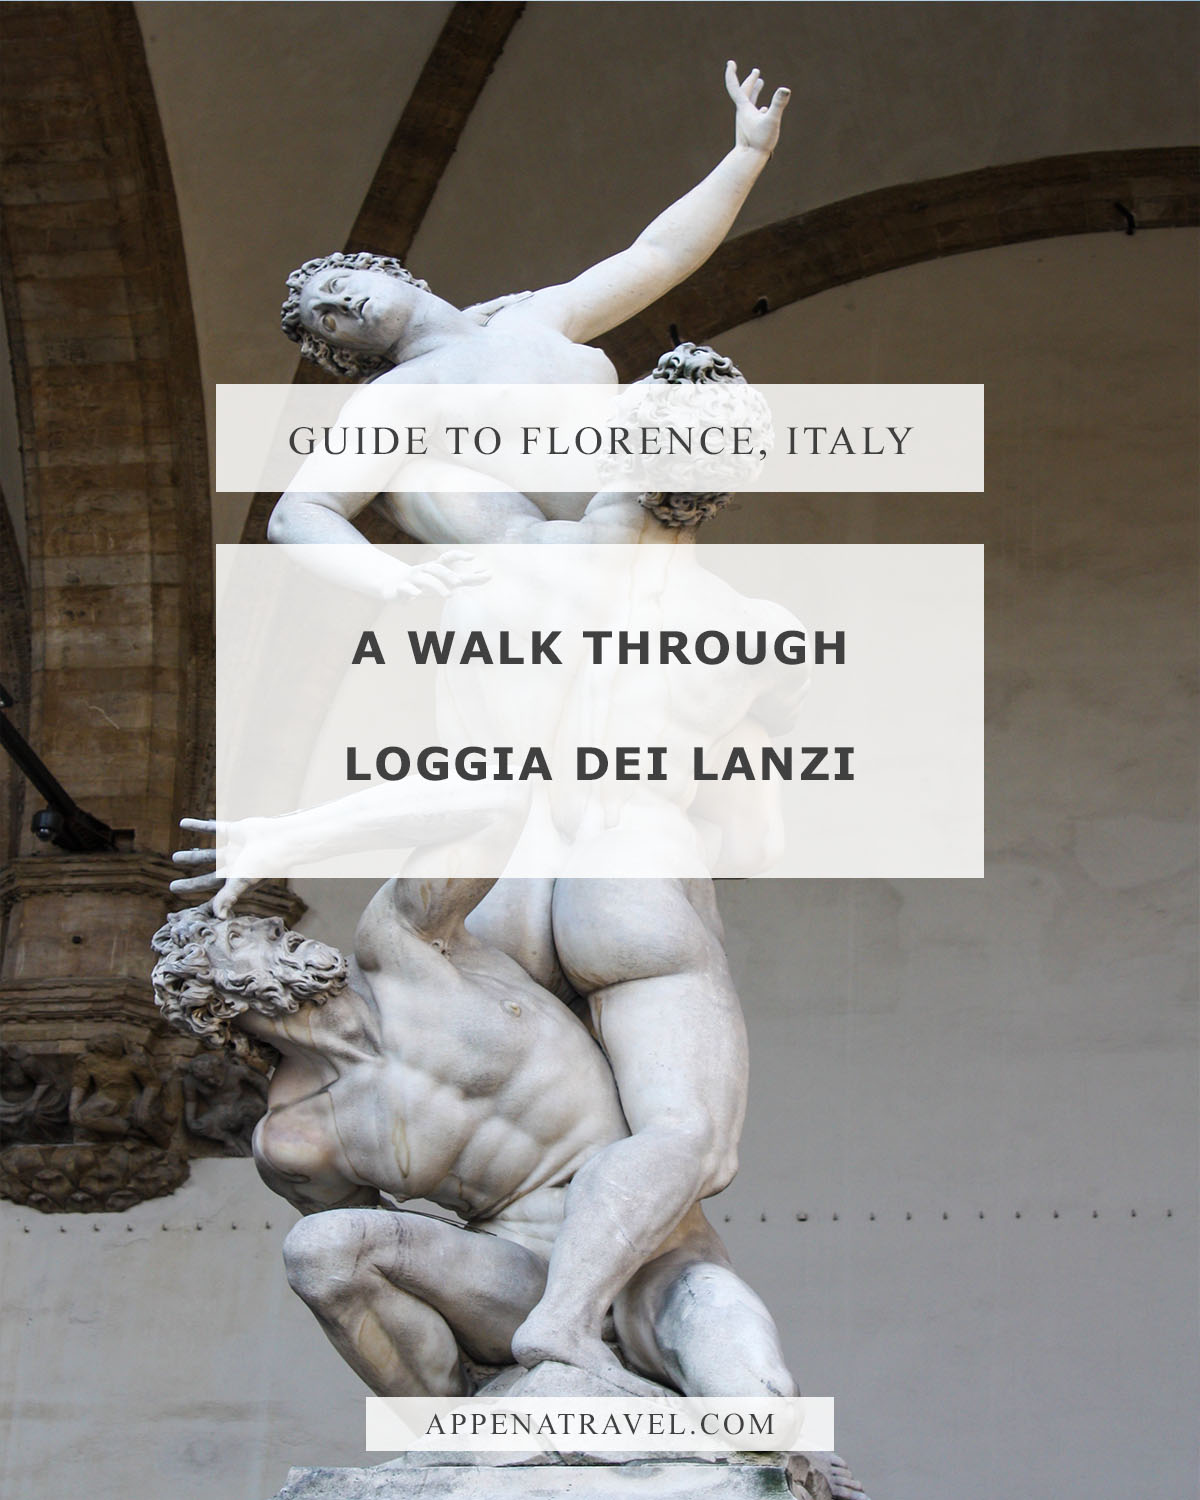 A Walk Through Loggia dei Lanzi.jpg